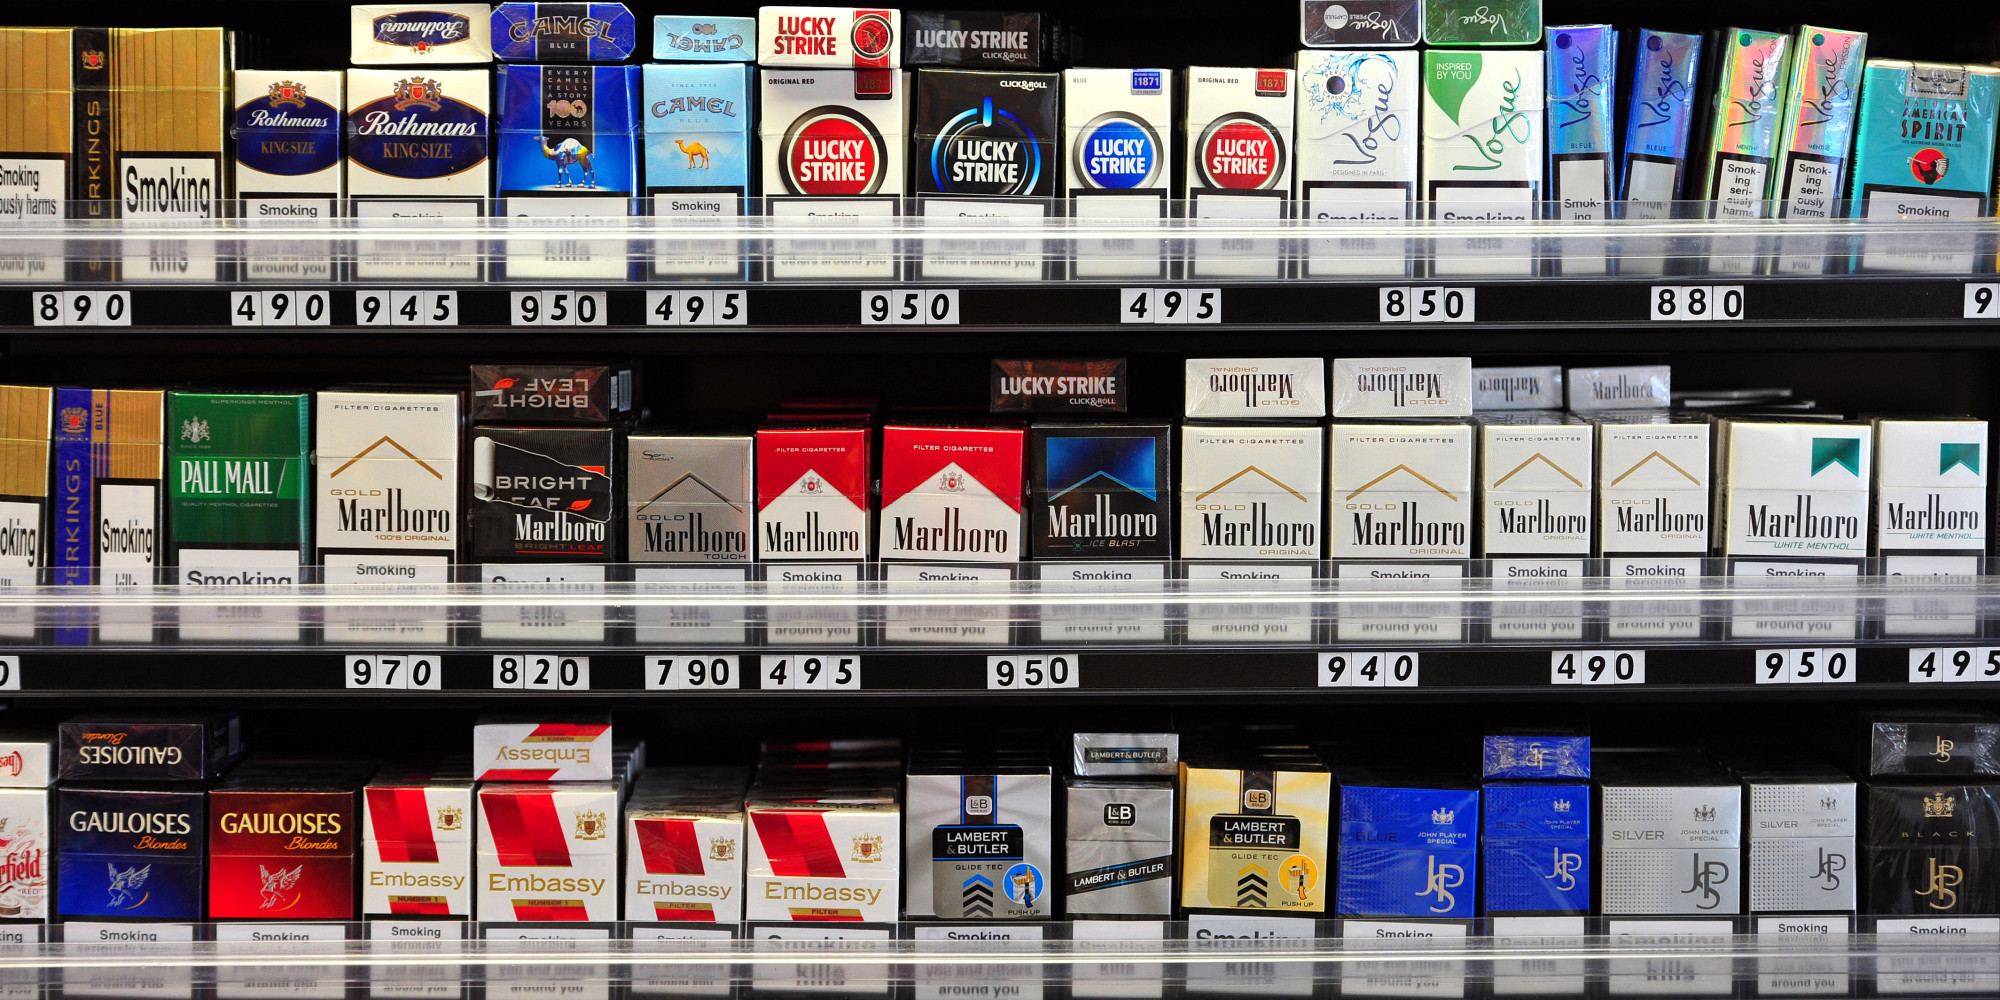 Cigarettes In Brightly-Coloured Packaging Seen As More Harmful